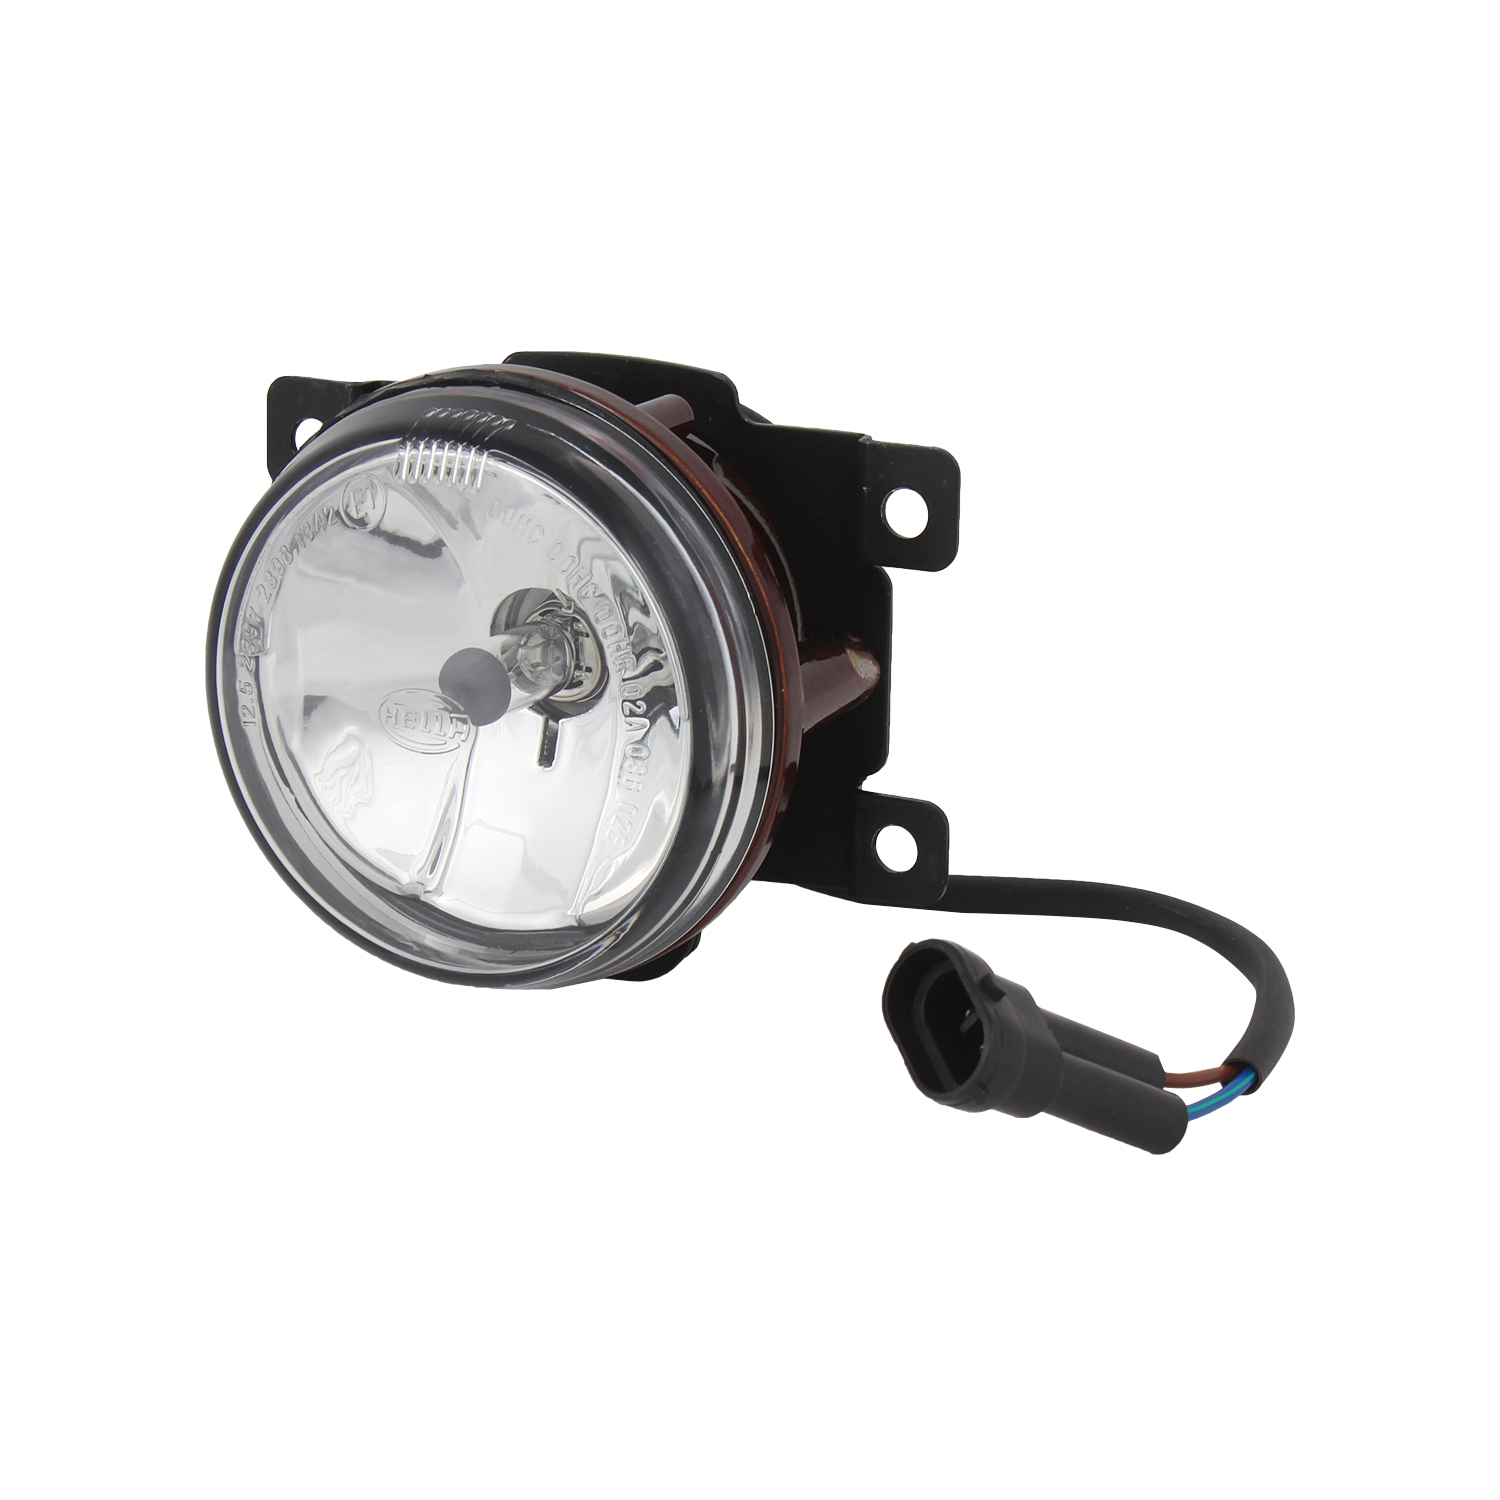 HELLA 008582551 90mm Front Fog Lamp 12V  (Knight Rider)